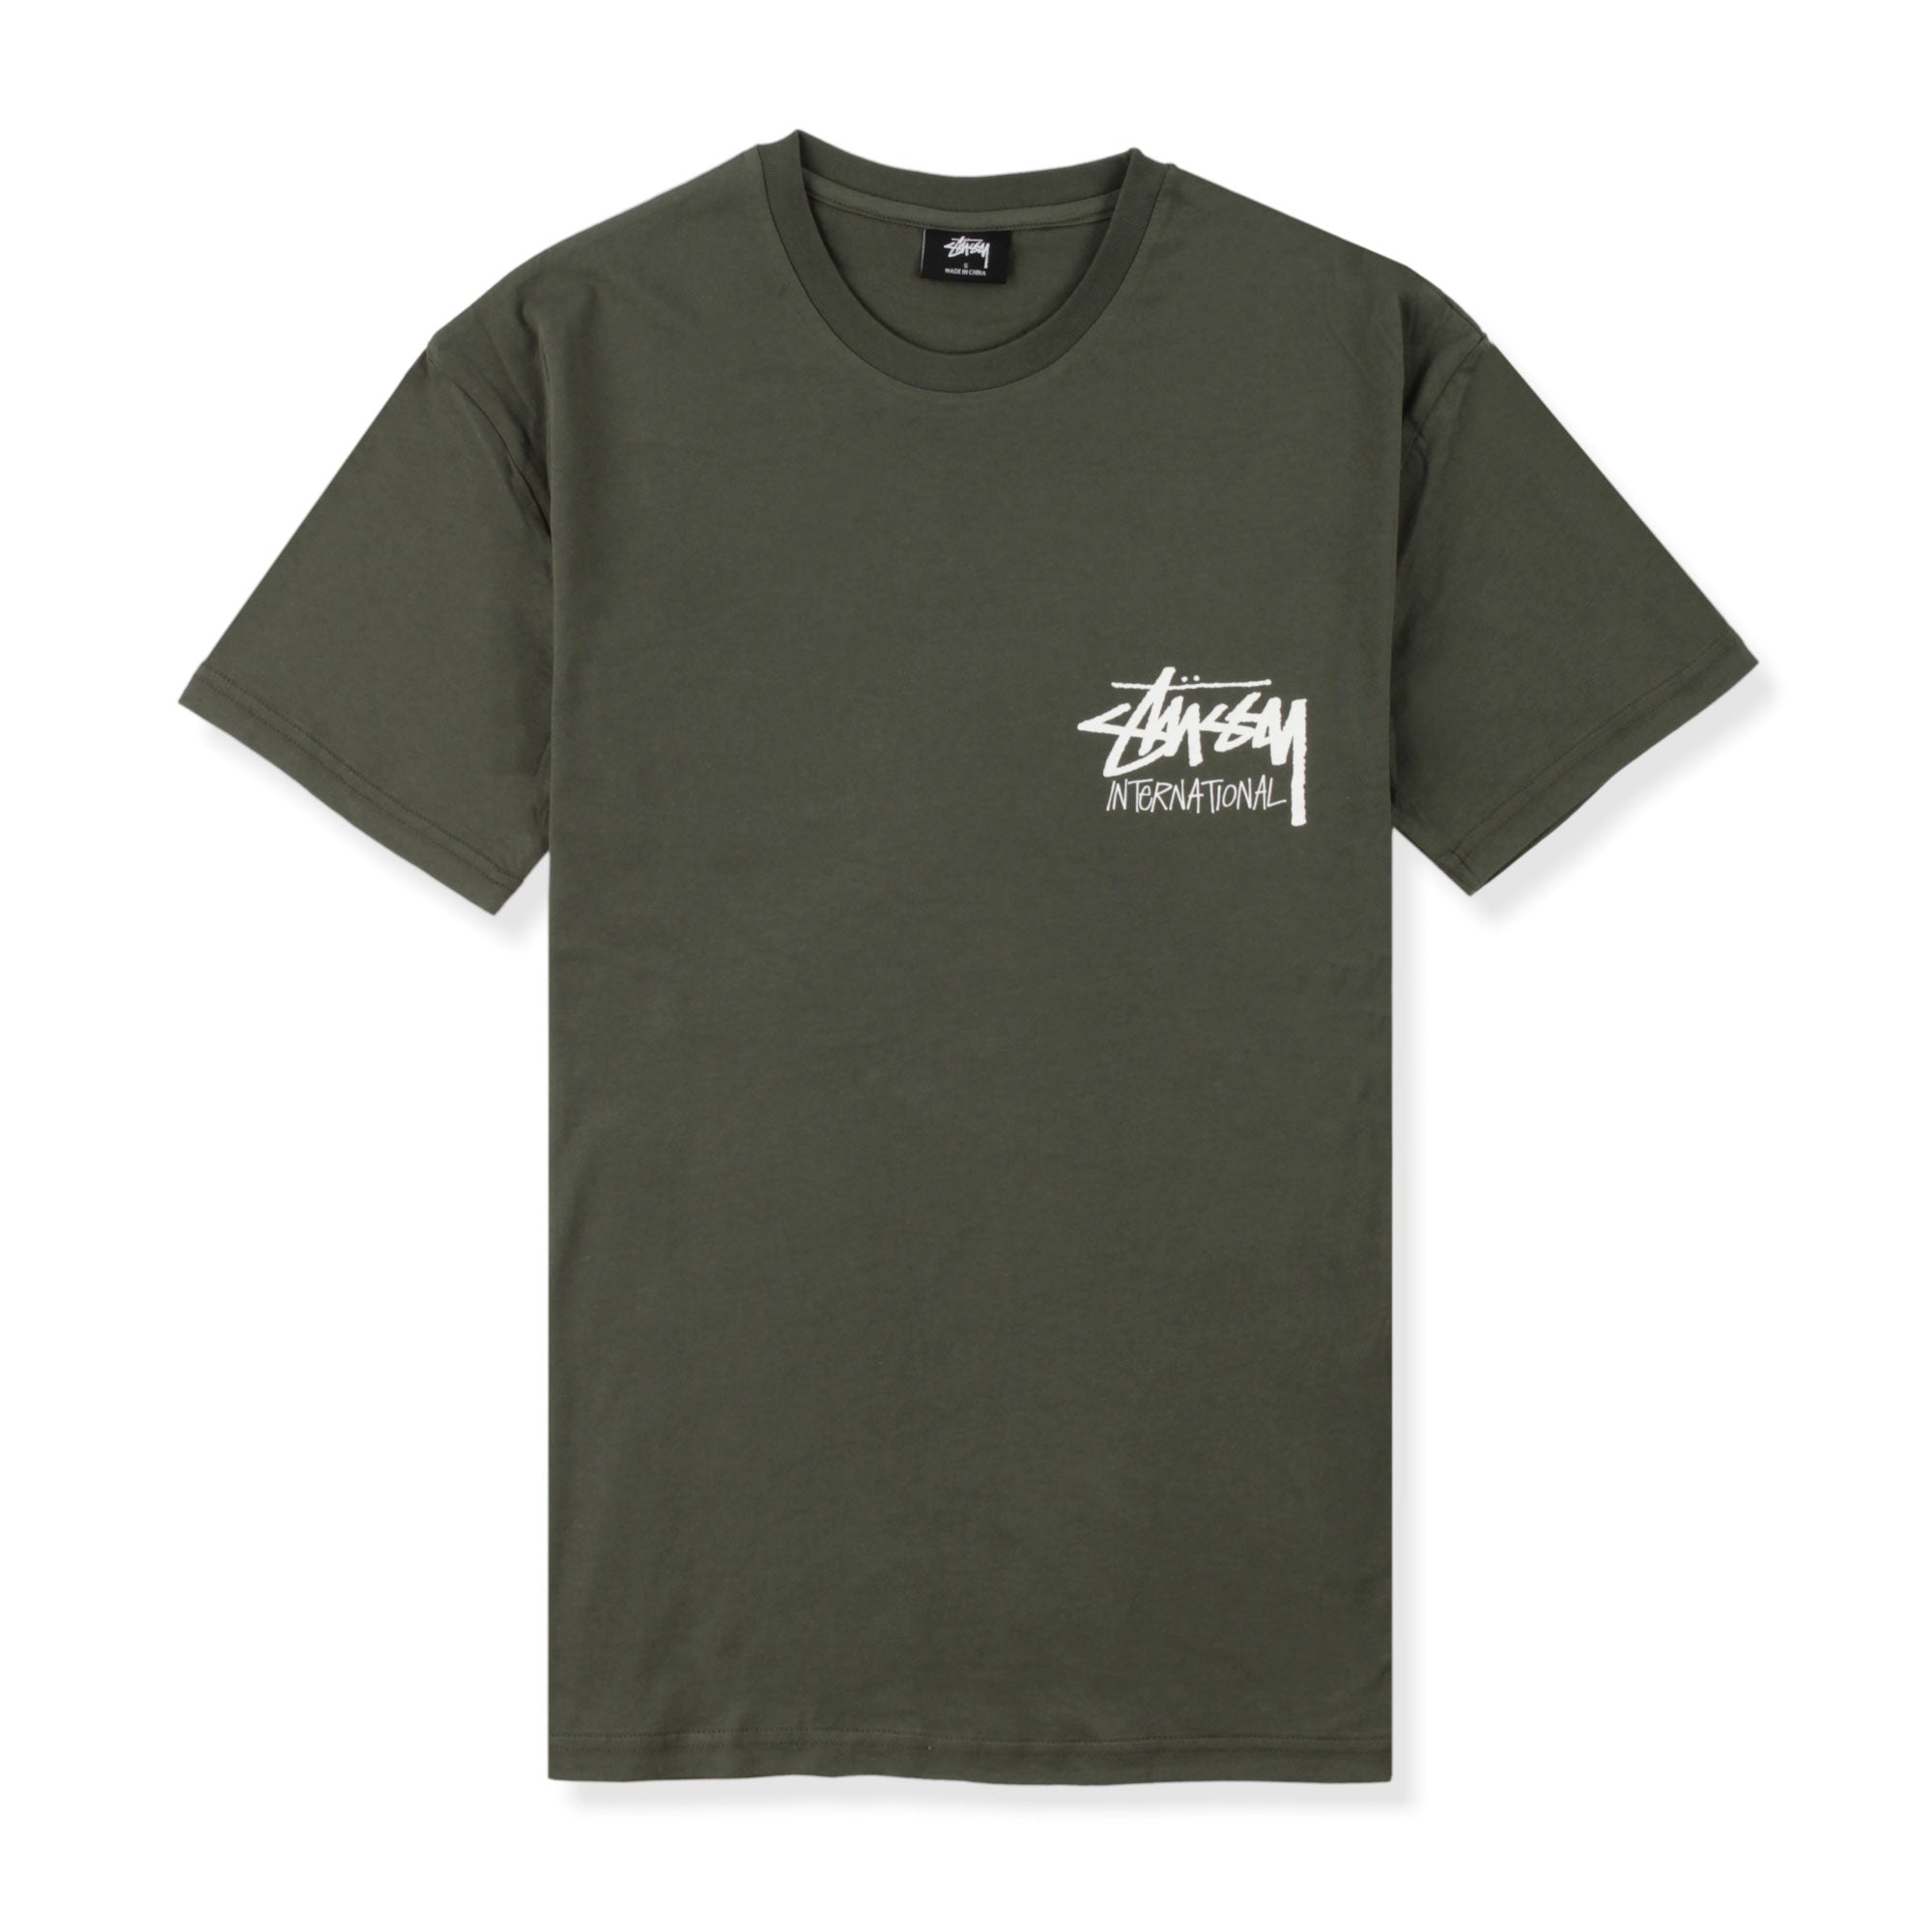 Stussy Stock International Tee Product Photo #1